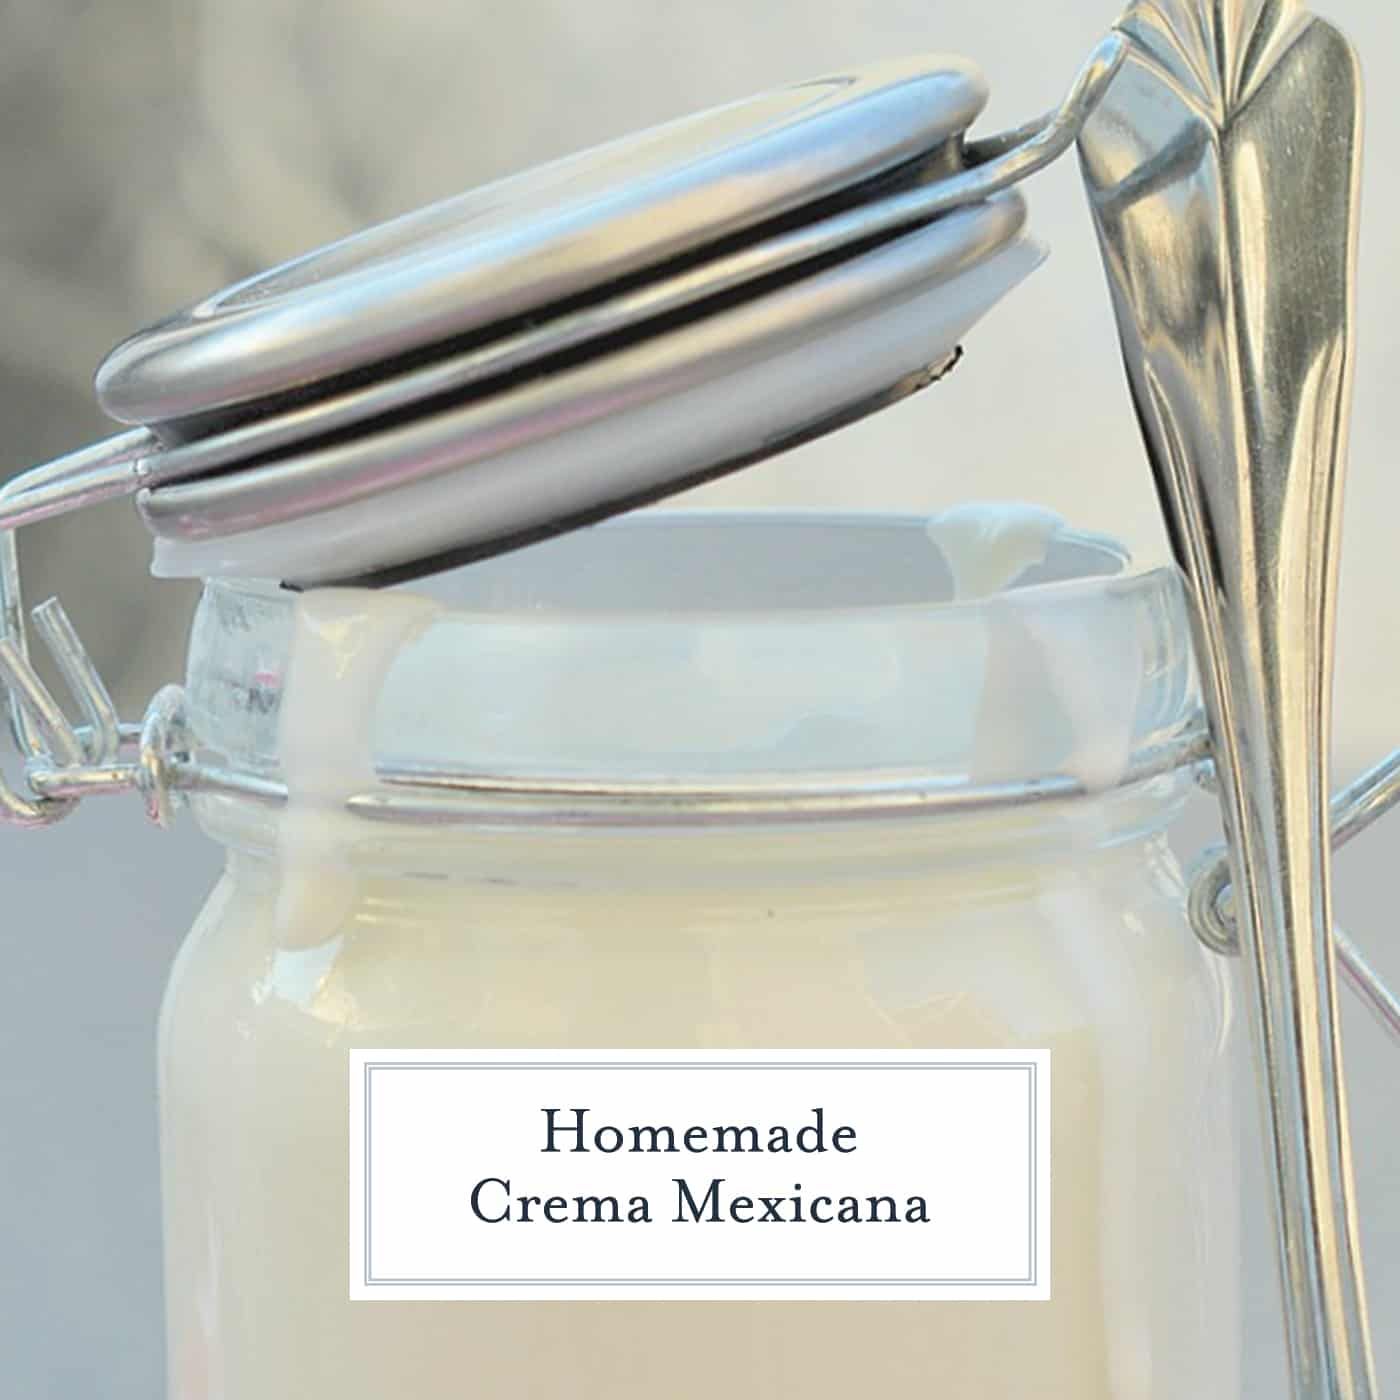 Homemade Crema Mexicana made with just a handful of ingredients you have in your pantry. Perfect for tacos, burritos, and Street Corn Salad! #crema #cremamexicana www.savoryexperiments.com